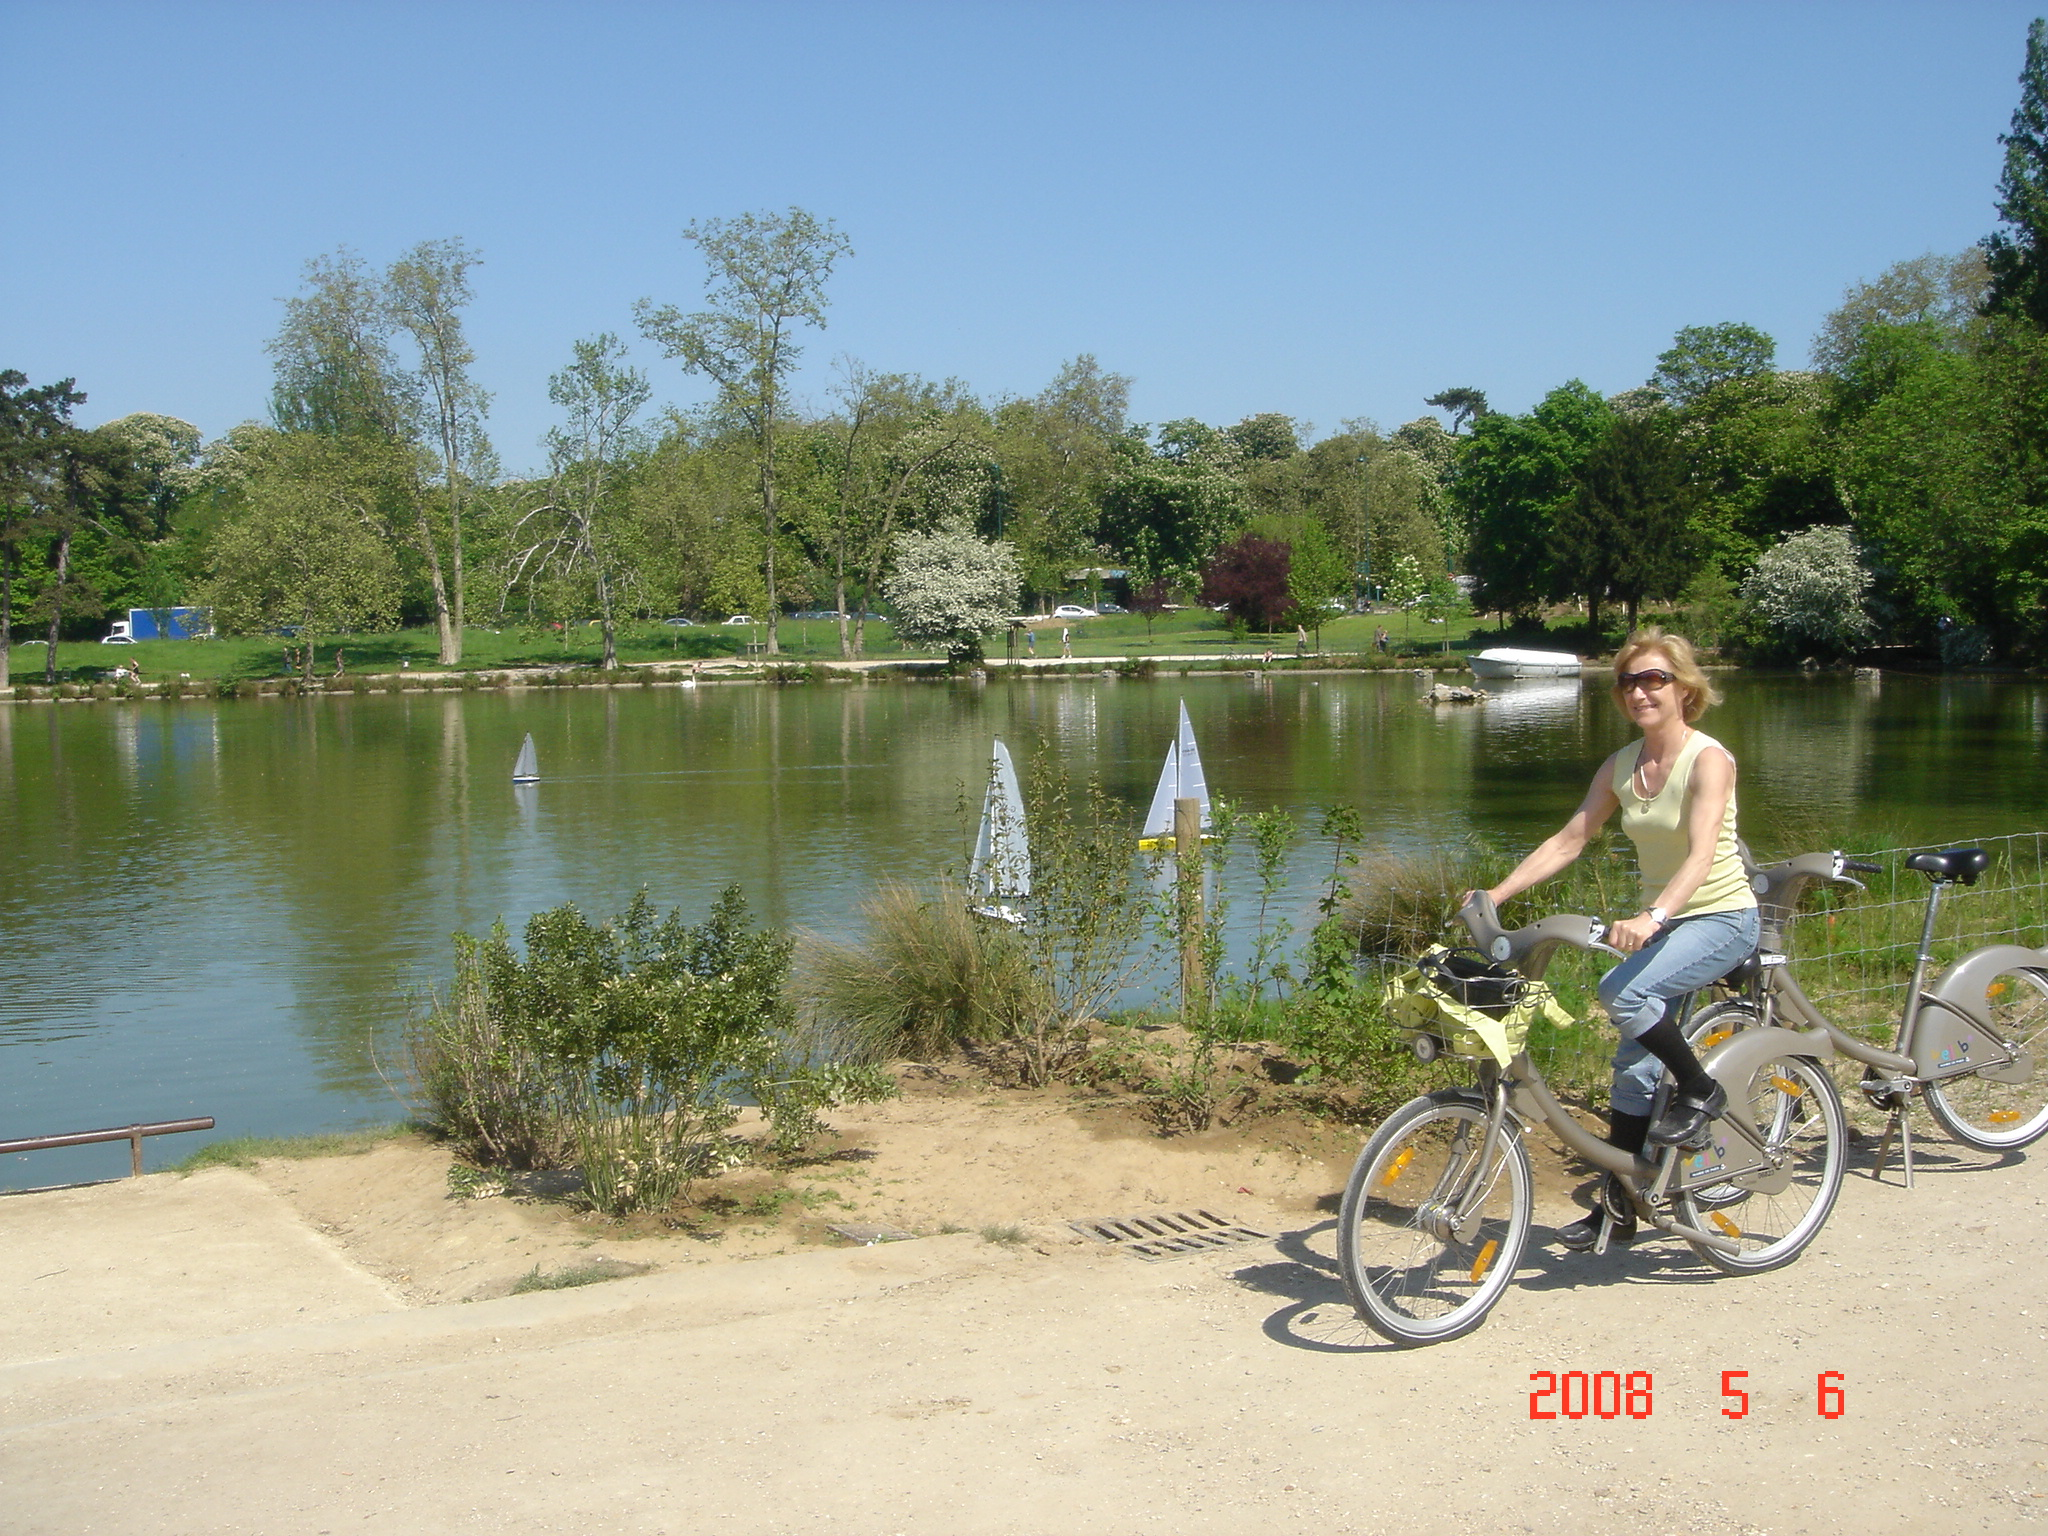 Bicycling in the Parque de Vincennes - Paris